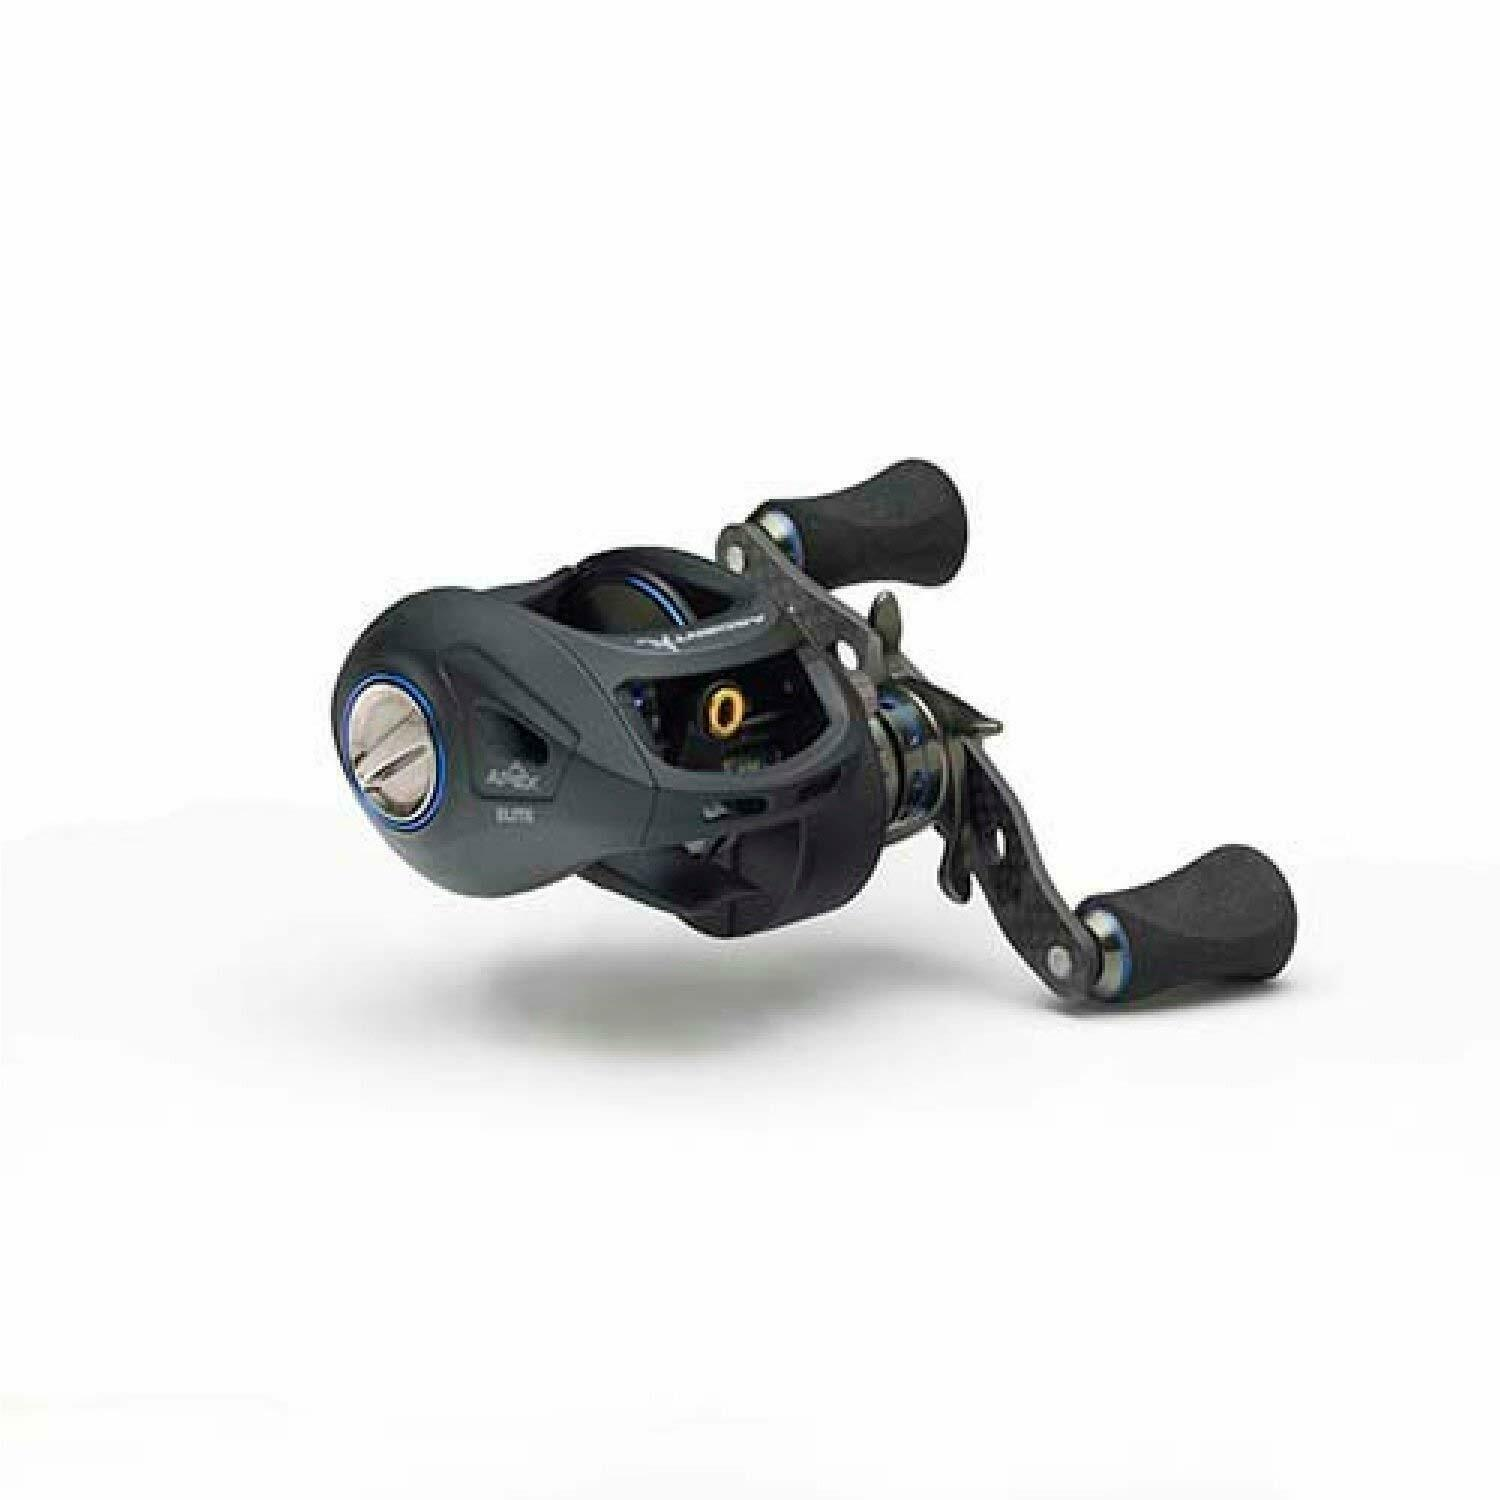 ARDENT  APEX Elite Reel - Angling Fishing Reel 6.5 1 Gear Ratio  order now with big discount & free delivery